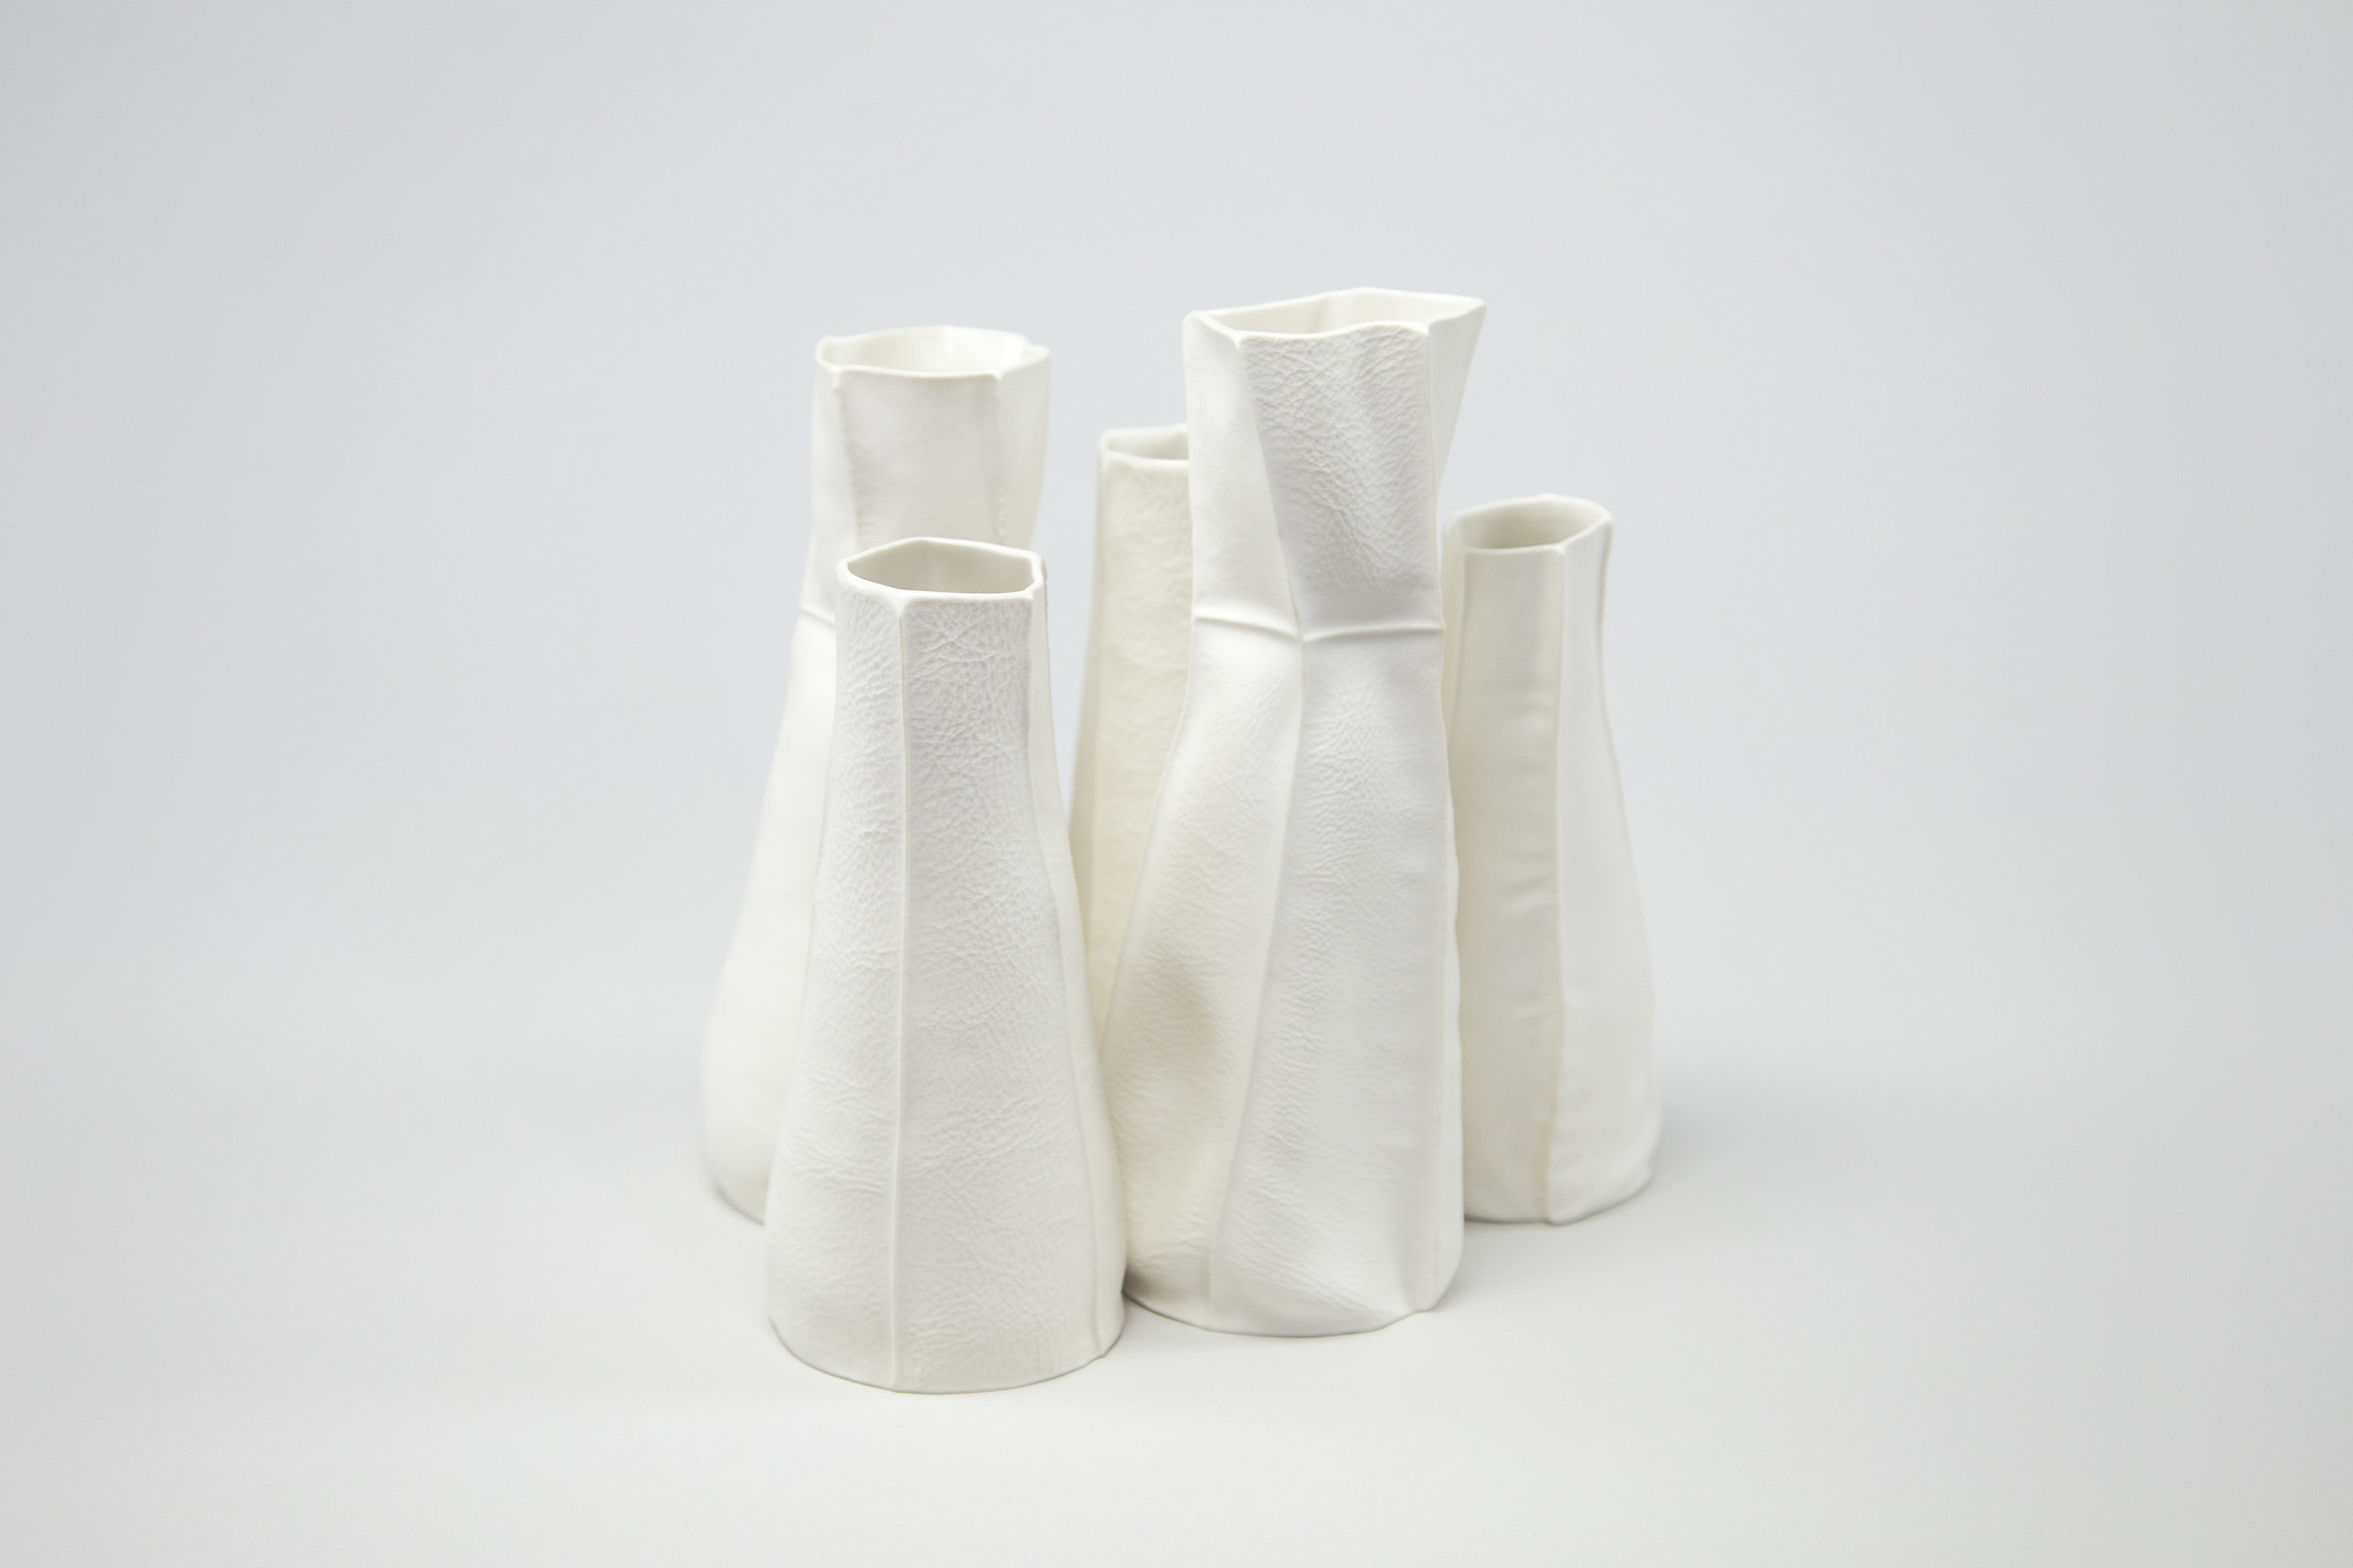 Kawa Series - One of a kind porcelain objects